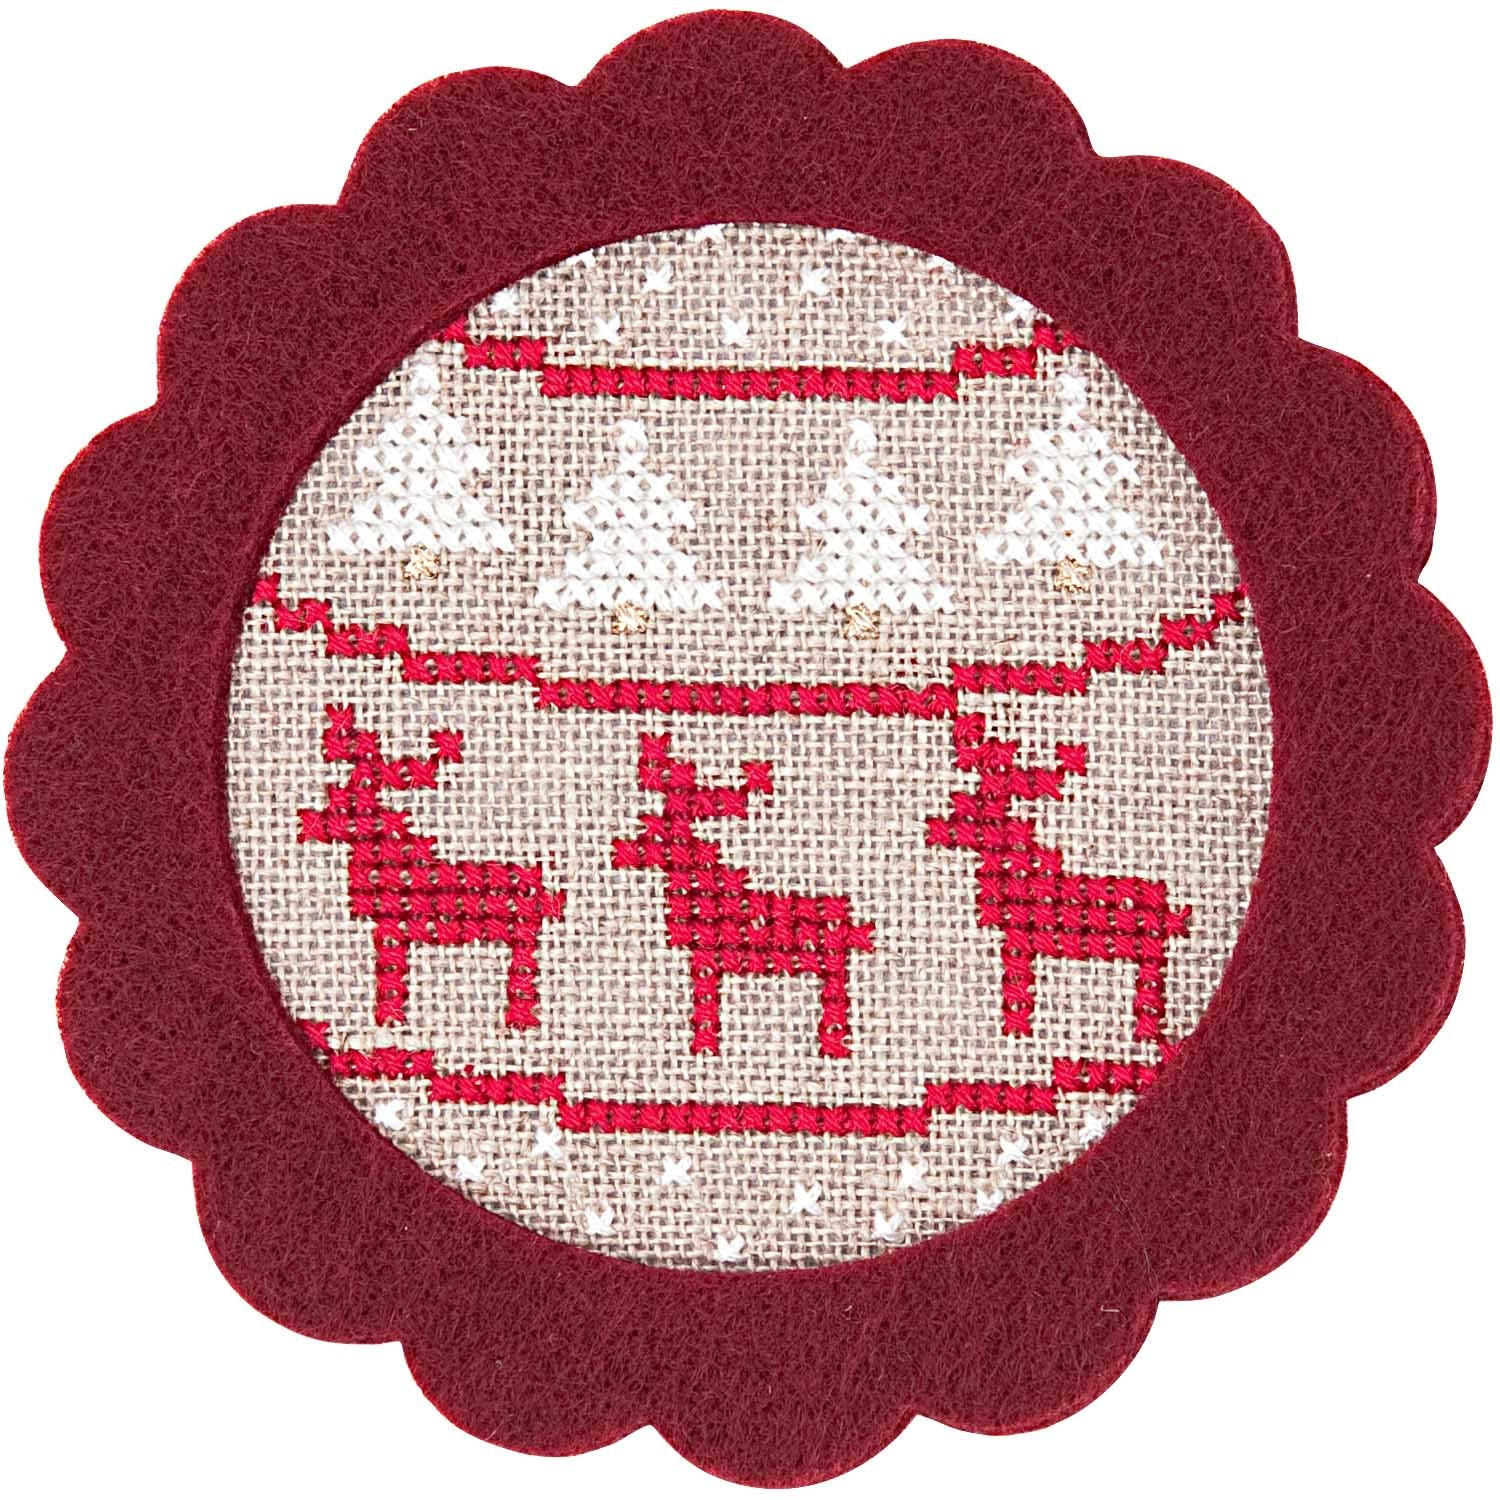 Rico Reindeer Felt Hanger Cross Stitch Kit